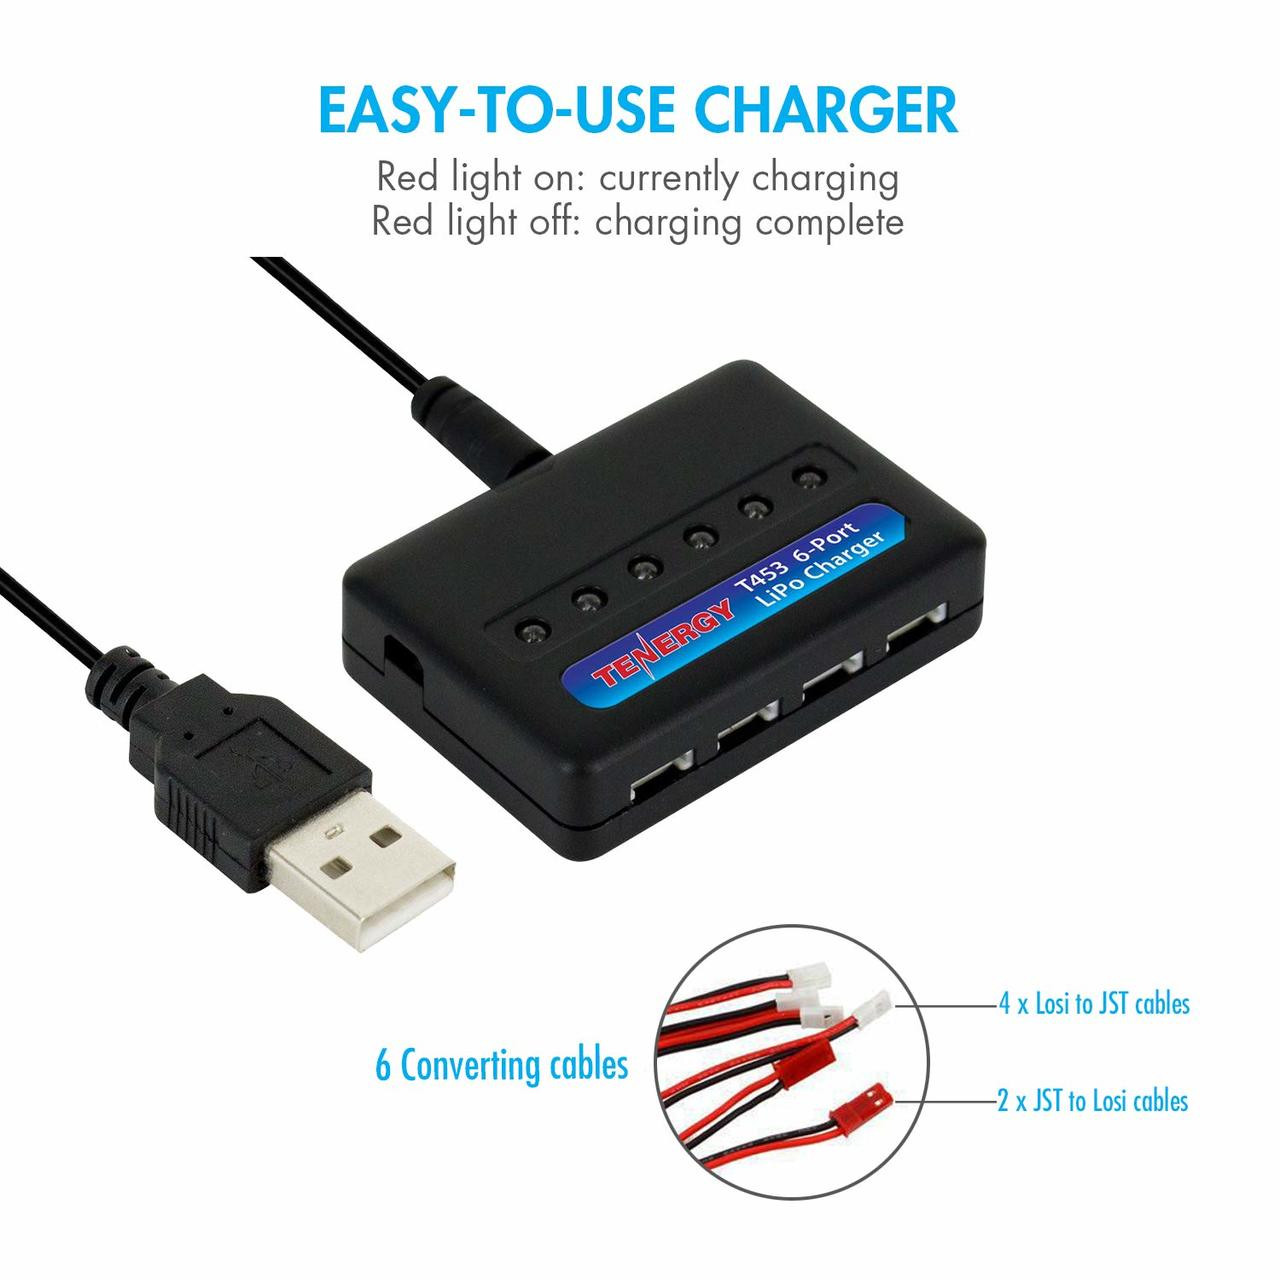 Combo: T453 charger for 3.7V Lithium RC battery + 6pc 3.7V 700mAh LiPo Battery Pack (Compatible with Syma X5, X5C, X5SC, X5SW and Cheerson CX-30W)